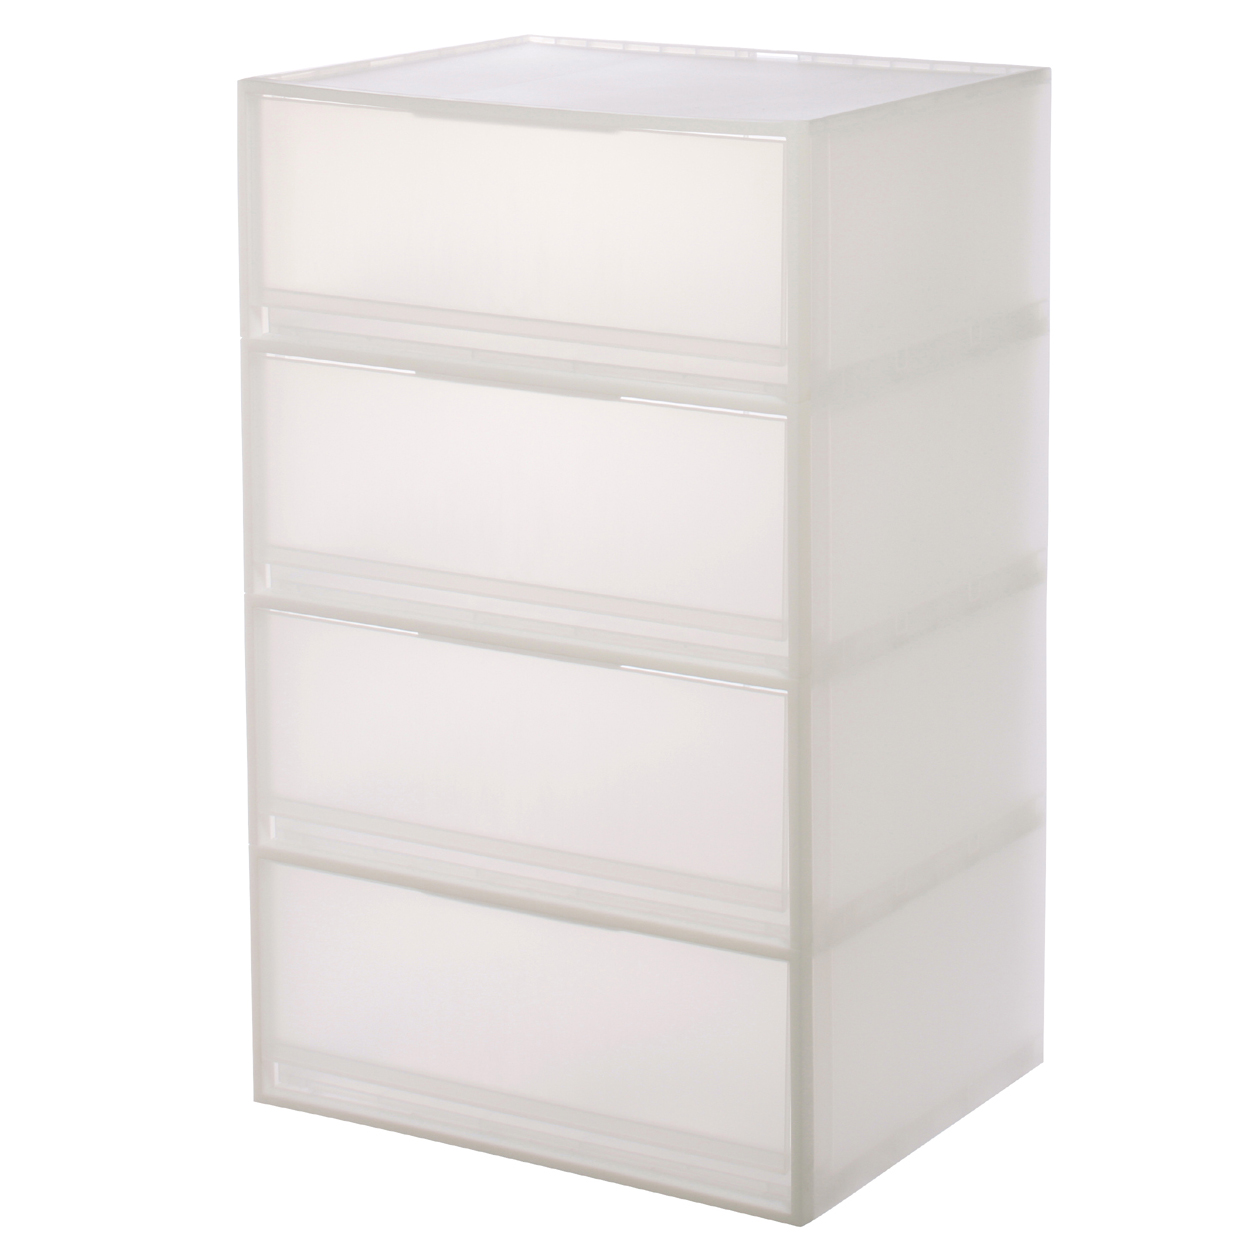 paper image wham card plastic unit handy system drawers handi home storage drawer modular and three stackable stacking